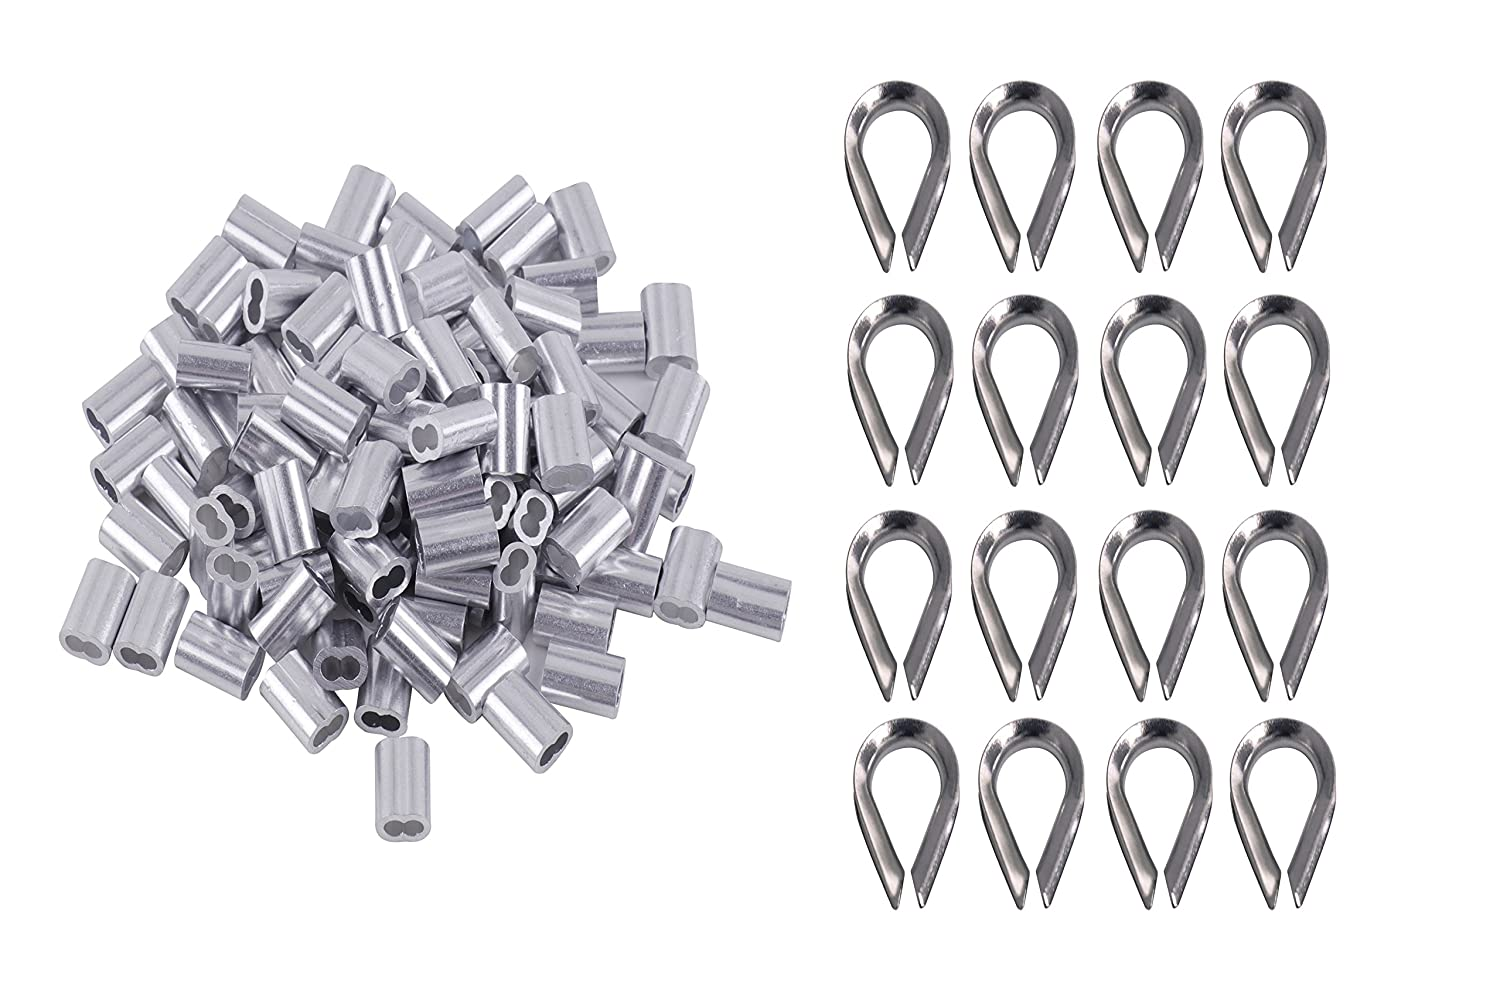 Stainless Steel Wire Rope Cable Thimbles Kit for Wire Rope Cable Thimbles Rigging for/Sale Allgreen Double Barrel Ferrule Diameter Wire Rope 1//8 Inch